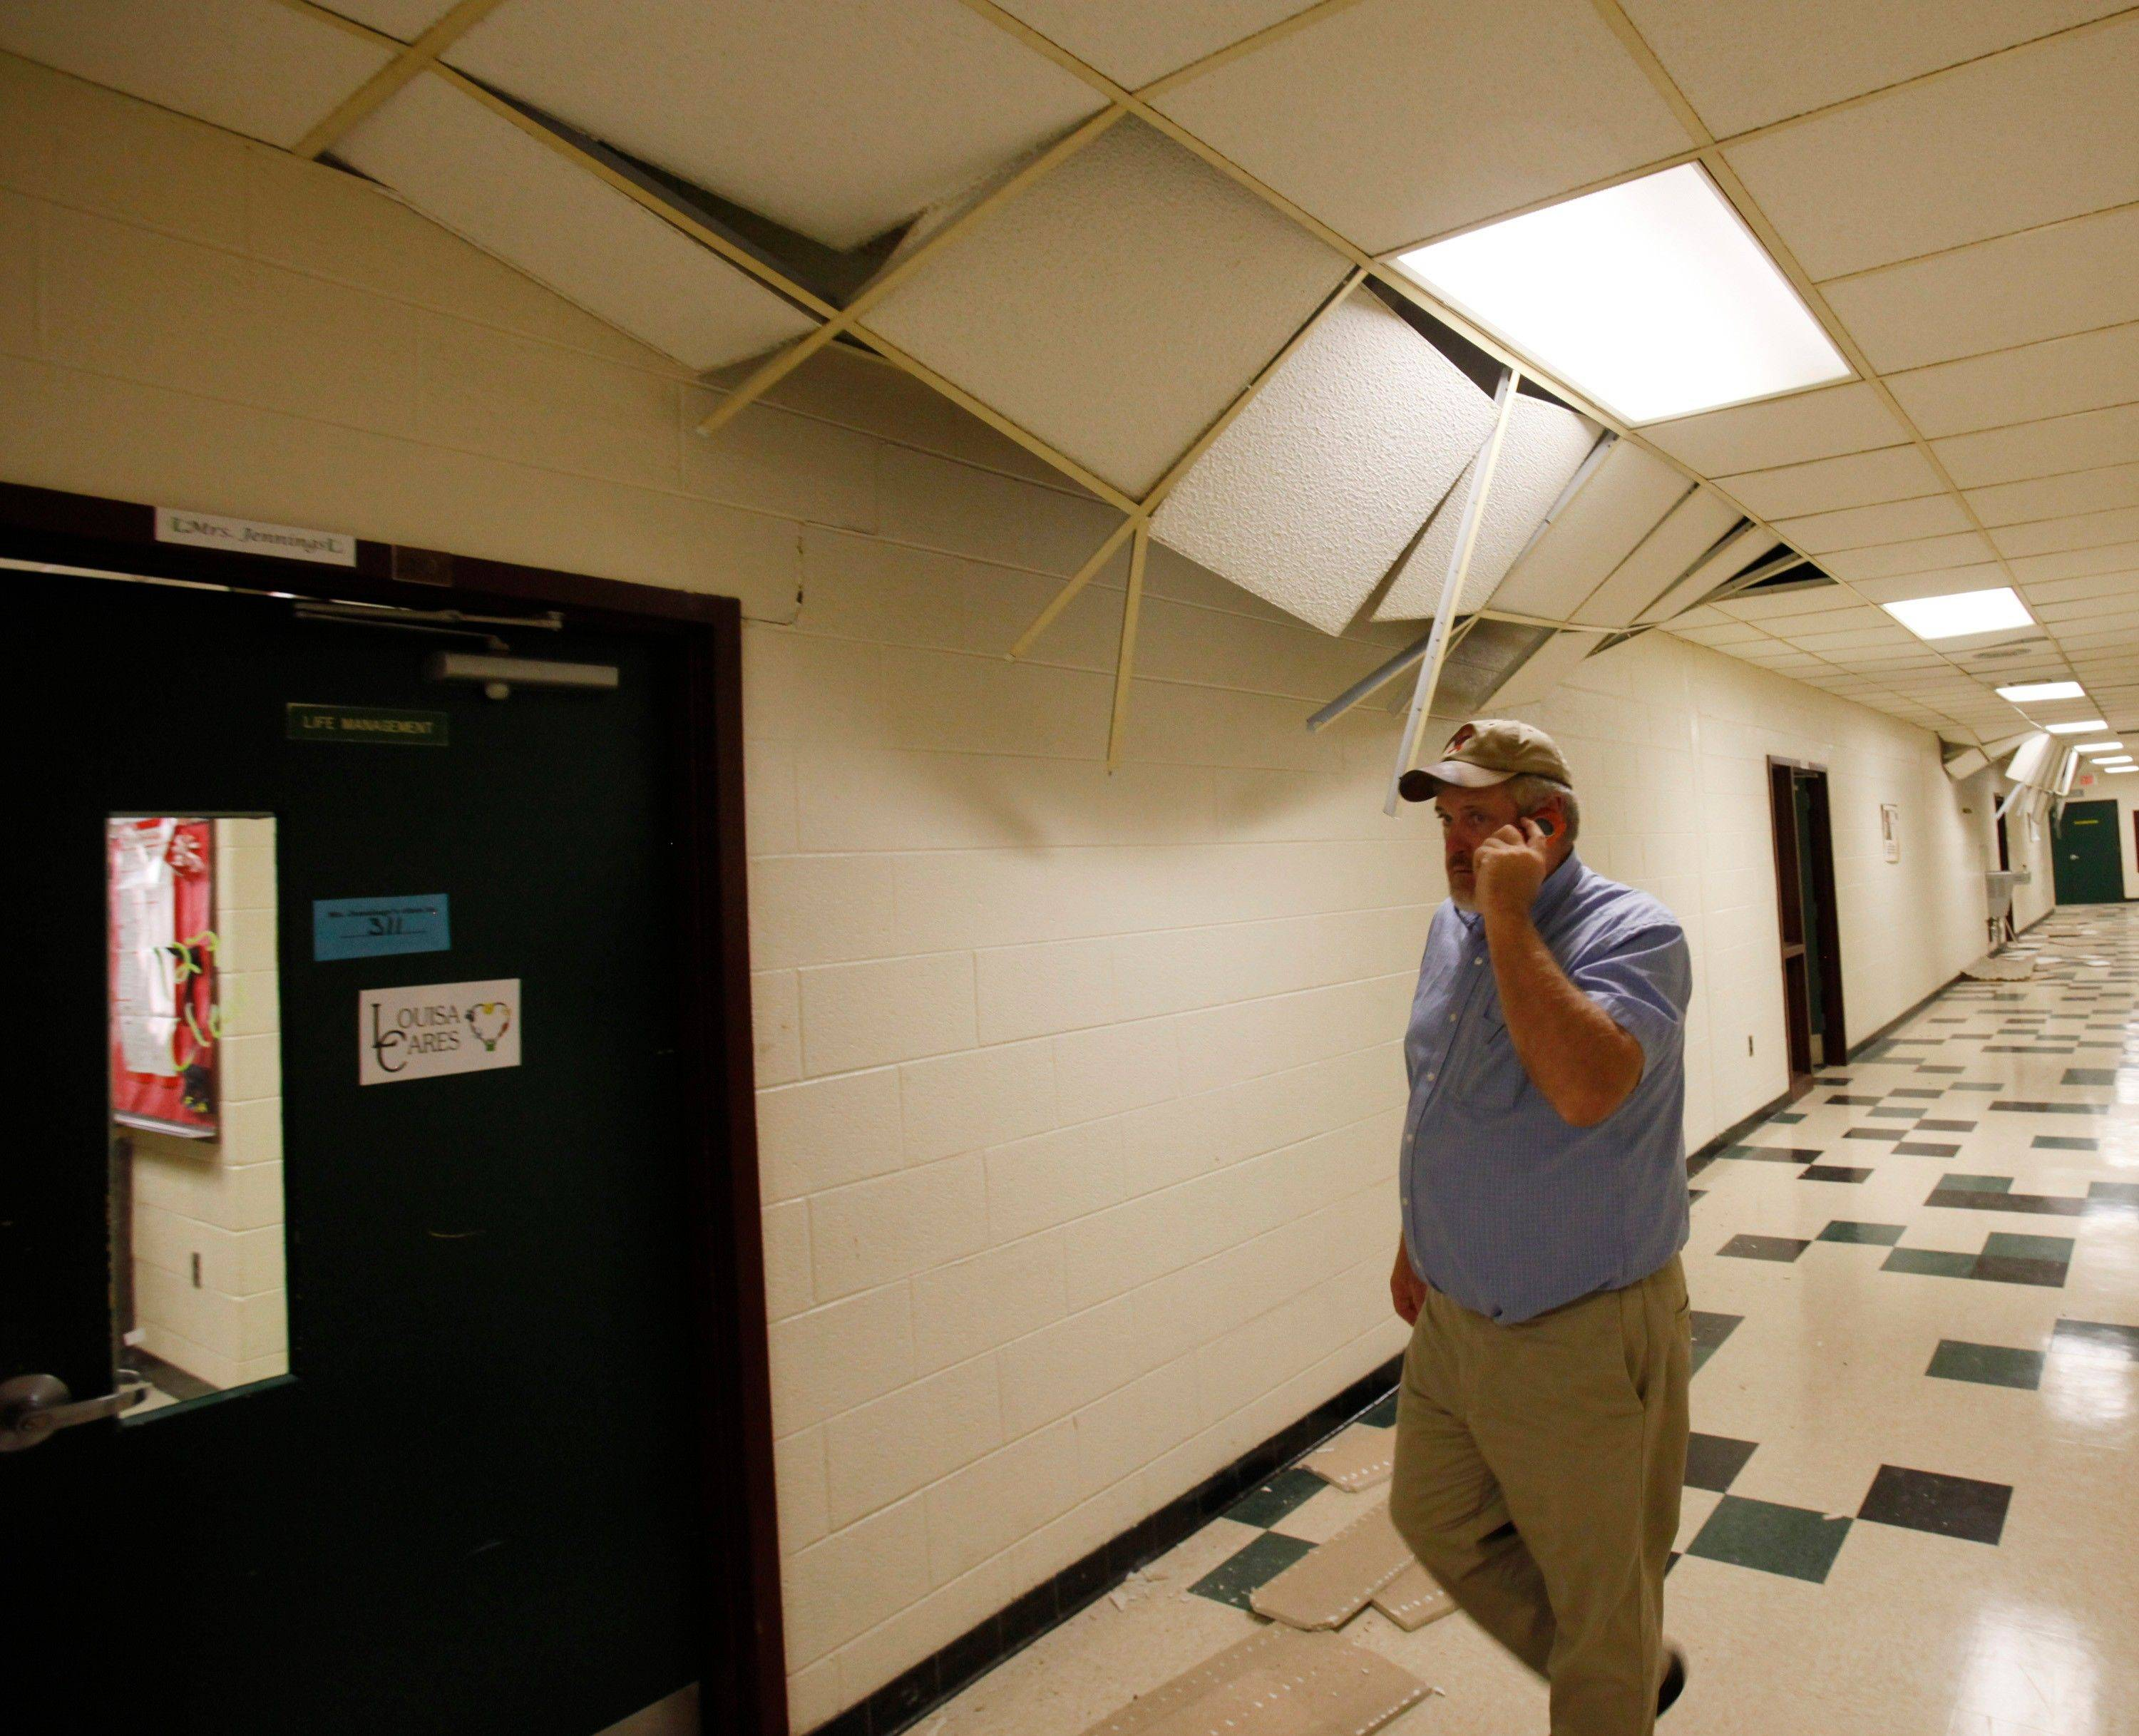 School board member Brian Huffman walks the halls surveying the damage to Louis County High school after a 5.8 magnitude earthquake in Mineral, Virginia .